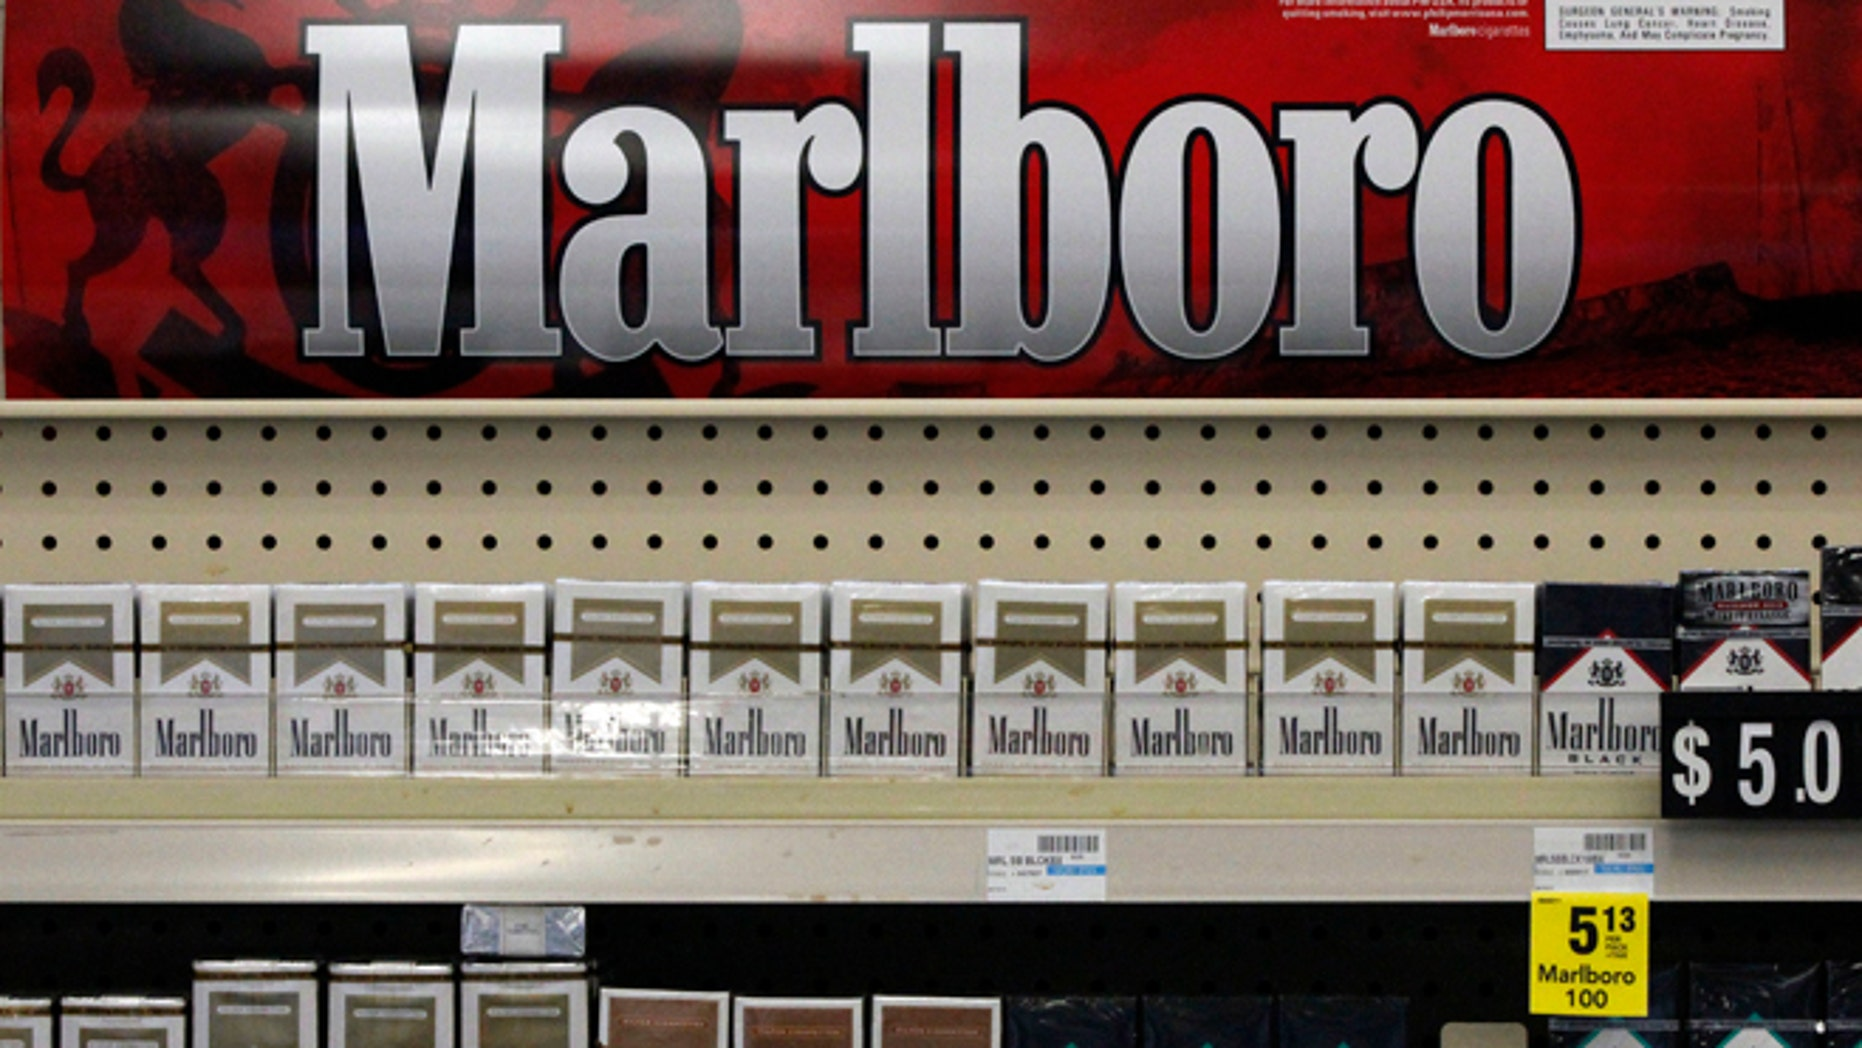 FILE - In this Wednesday, July 17, 2013 file photo, Marlboro cigarettes are on display in a CVS store in Pittsburgh. The nation's second-largest drugstore chain says it will phase out cigarettes, cigars and chewing tobacco by Oct. 1 as it continues to focus more on health care. The move will cost the Woonsocket, R.I., company about $2 billion in annual revenue. (AP Photo/Gene J. Puskar, File)